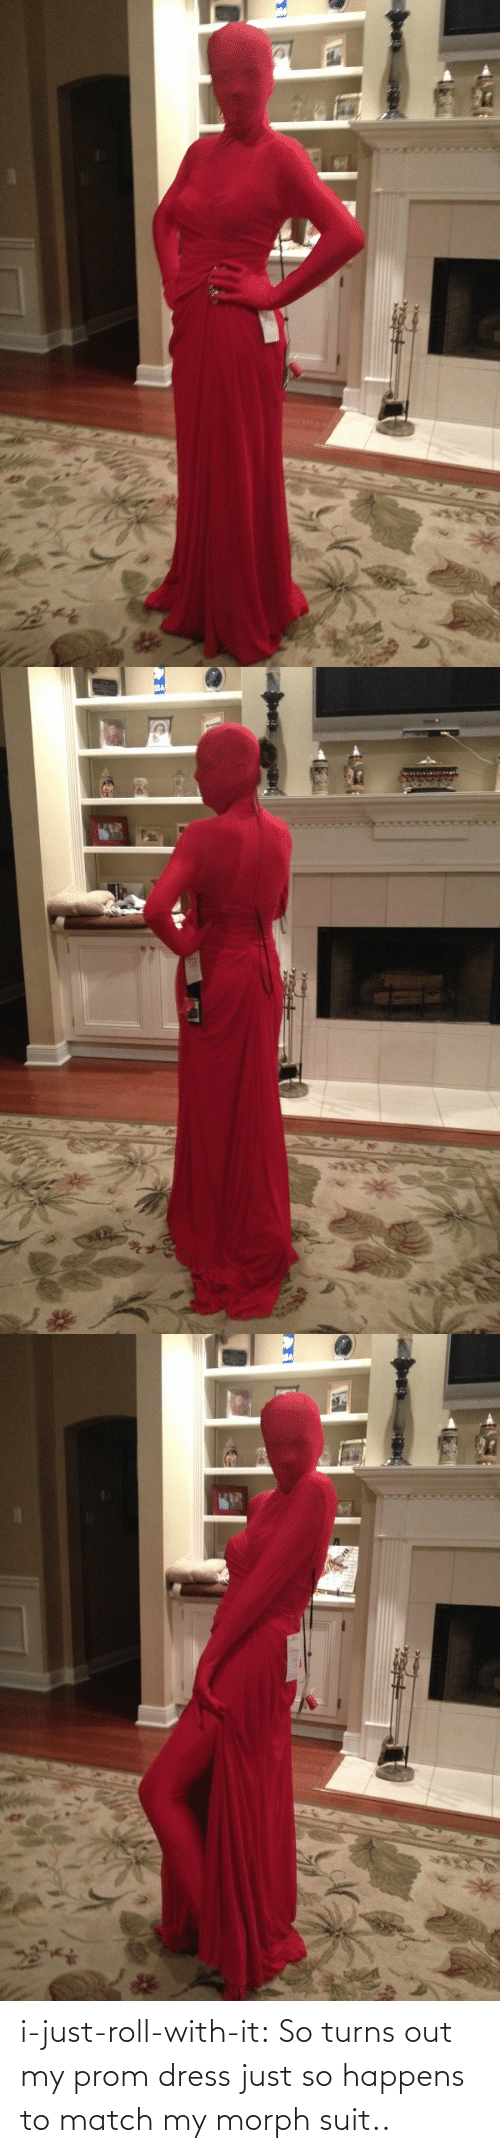 Prom Dress: SSA   %23 i-just-roll-with-it:  So turns out my prom dress just so happens to match my morph suit..